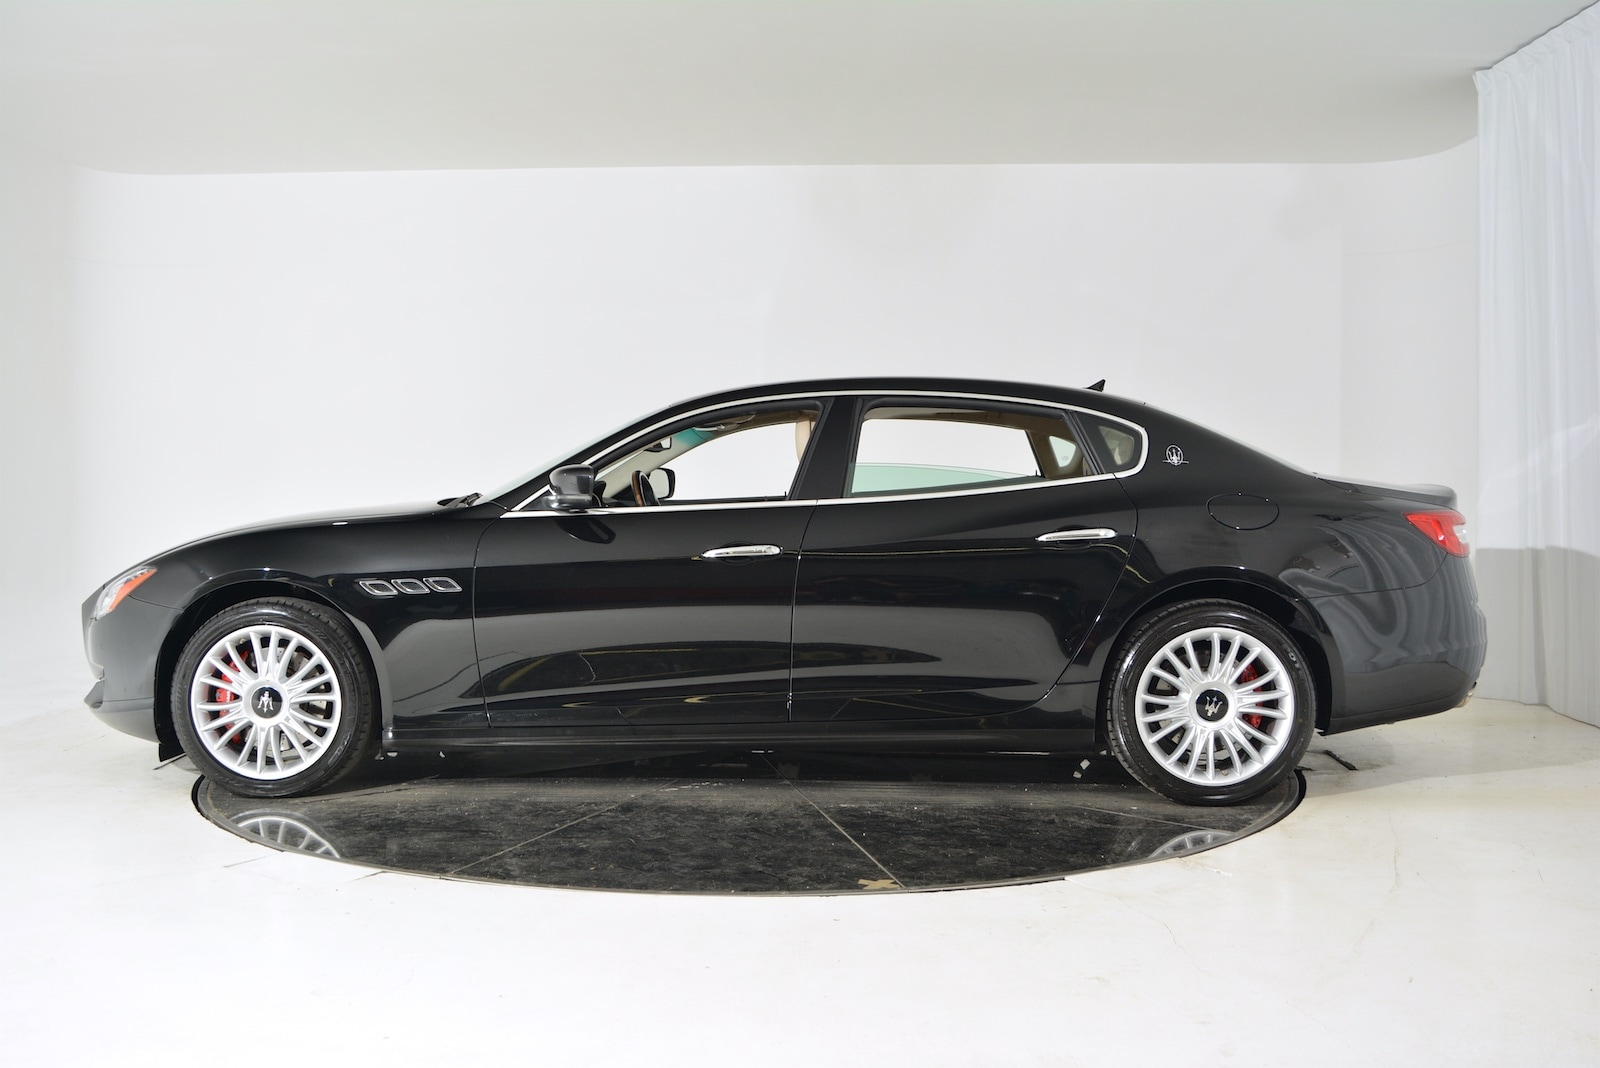 used 2014 maserati quattroporte s q4 for sale fort lauderdale fl zam56rra3e1113782. Black Bedroom Furniture Sets. Home Design Ideas